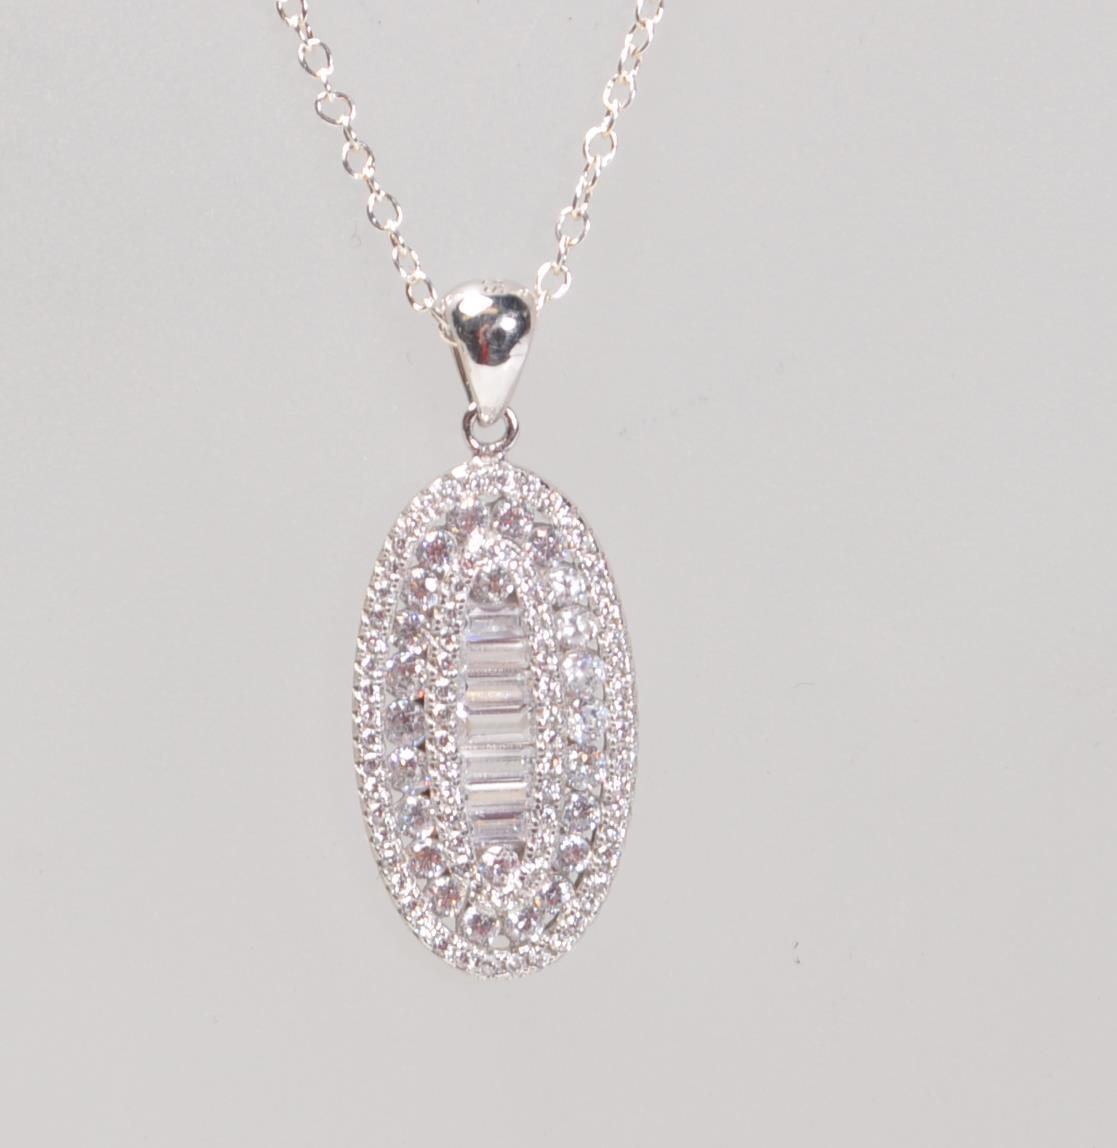 STAMPED 925 SILVER PENDANT NECKLACE SET WITH CZ'S. - Image 4 of 8